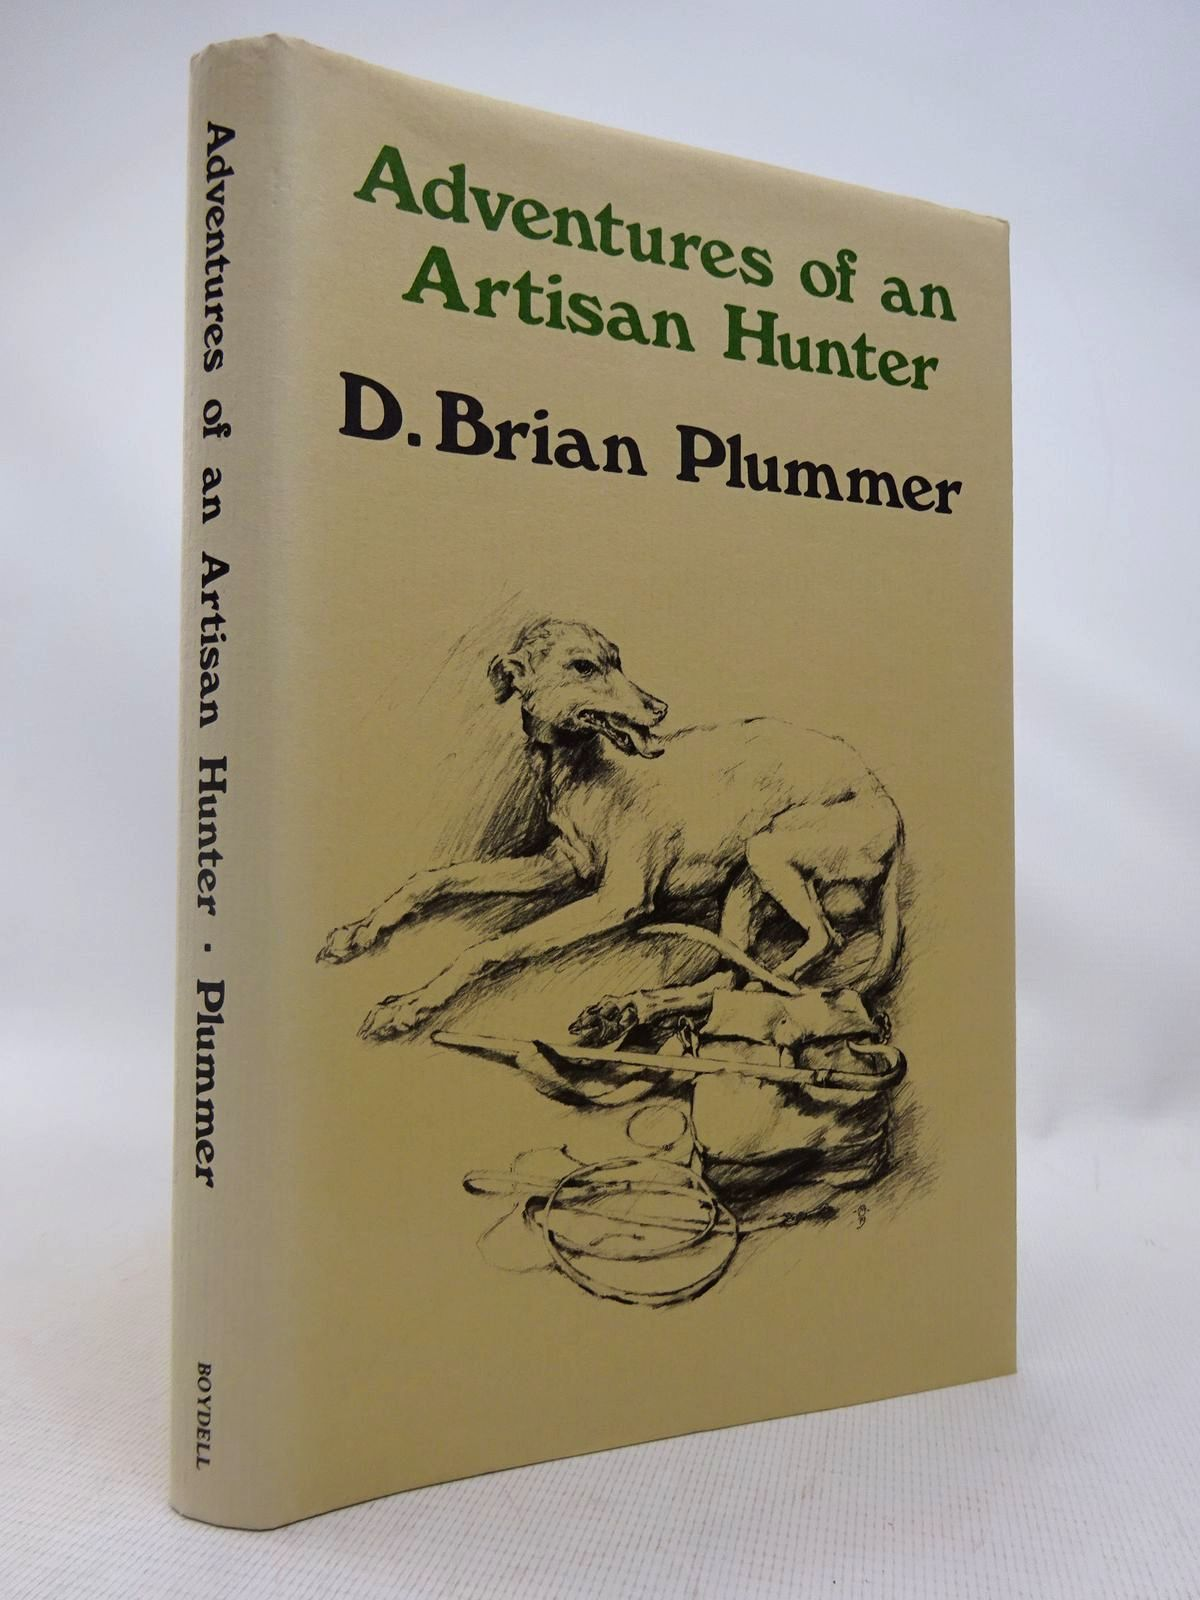 Photo of THE ADVENTURES OF AN ARTISAN HUNTER written by Plummer, David Brian illustrated by Knowelden, Martin published by The Boydell Press (STOCK CODE: 1816662)  for sale by Stella & Rose's Books